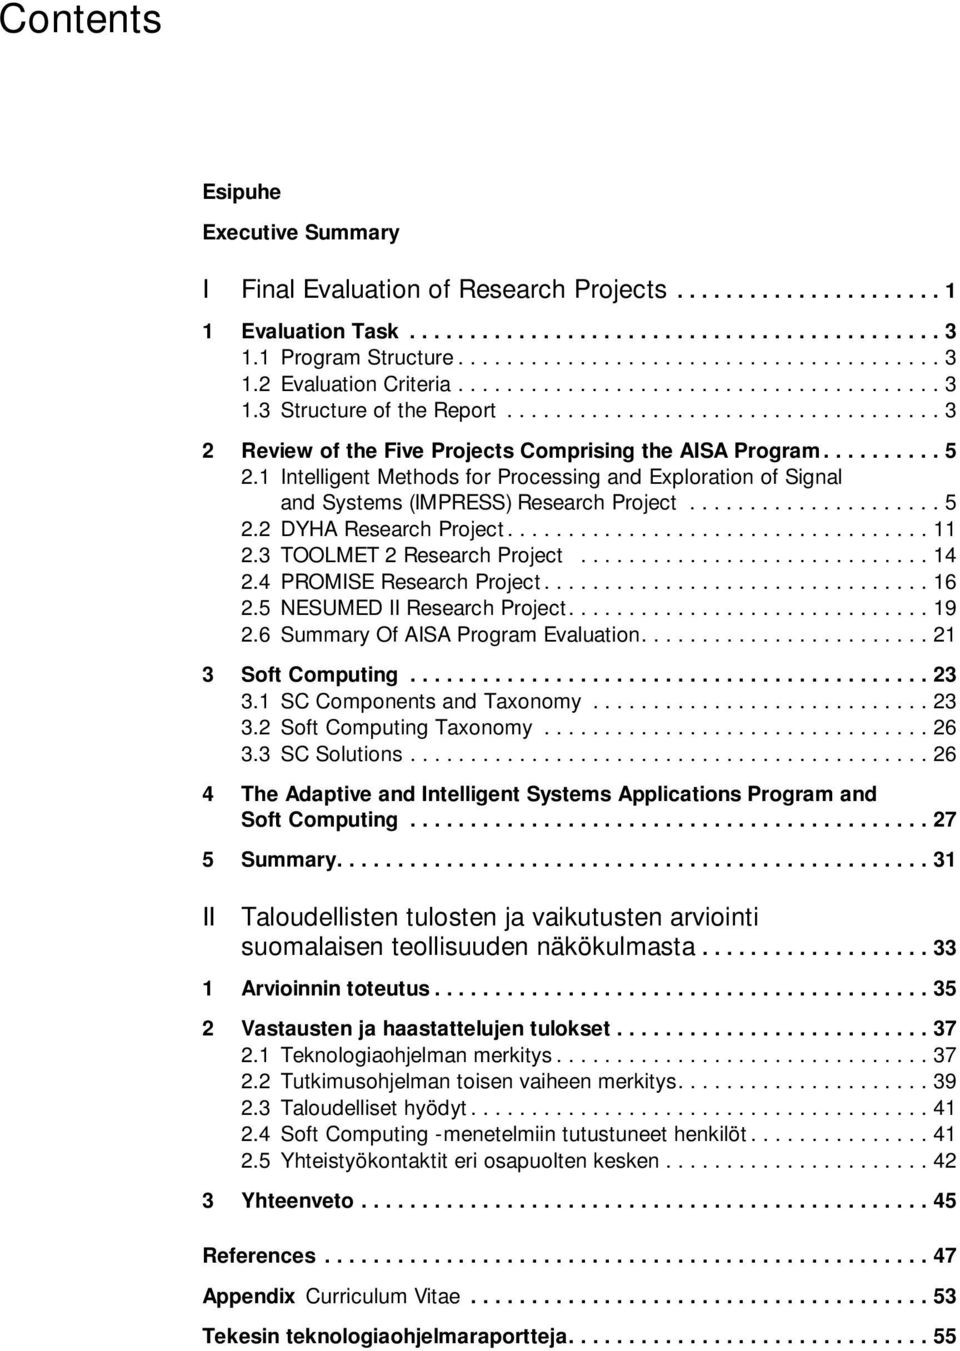 2 DYHA Research Project...11 2.3 TOOLMET 2 Research Project...14 2.4 PROMISE Research Project...16 2.5 NESUMED II Research Project....19 2.6 Summary Of AISA Program Evaluation....21 3 Soft Computing.